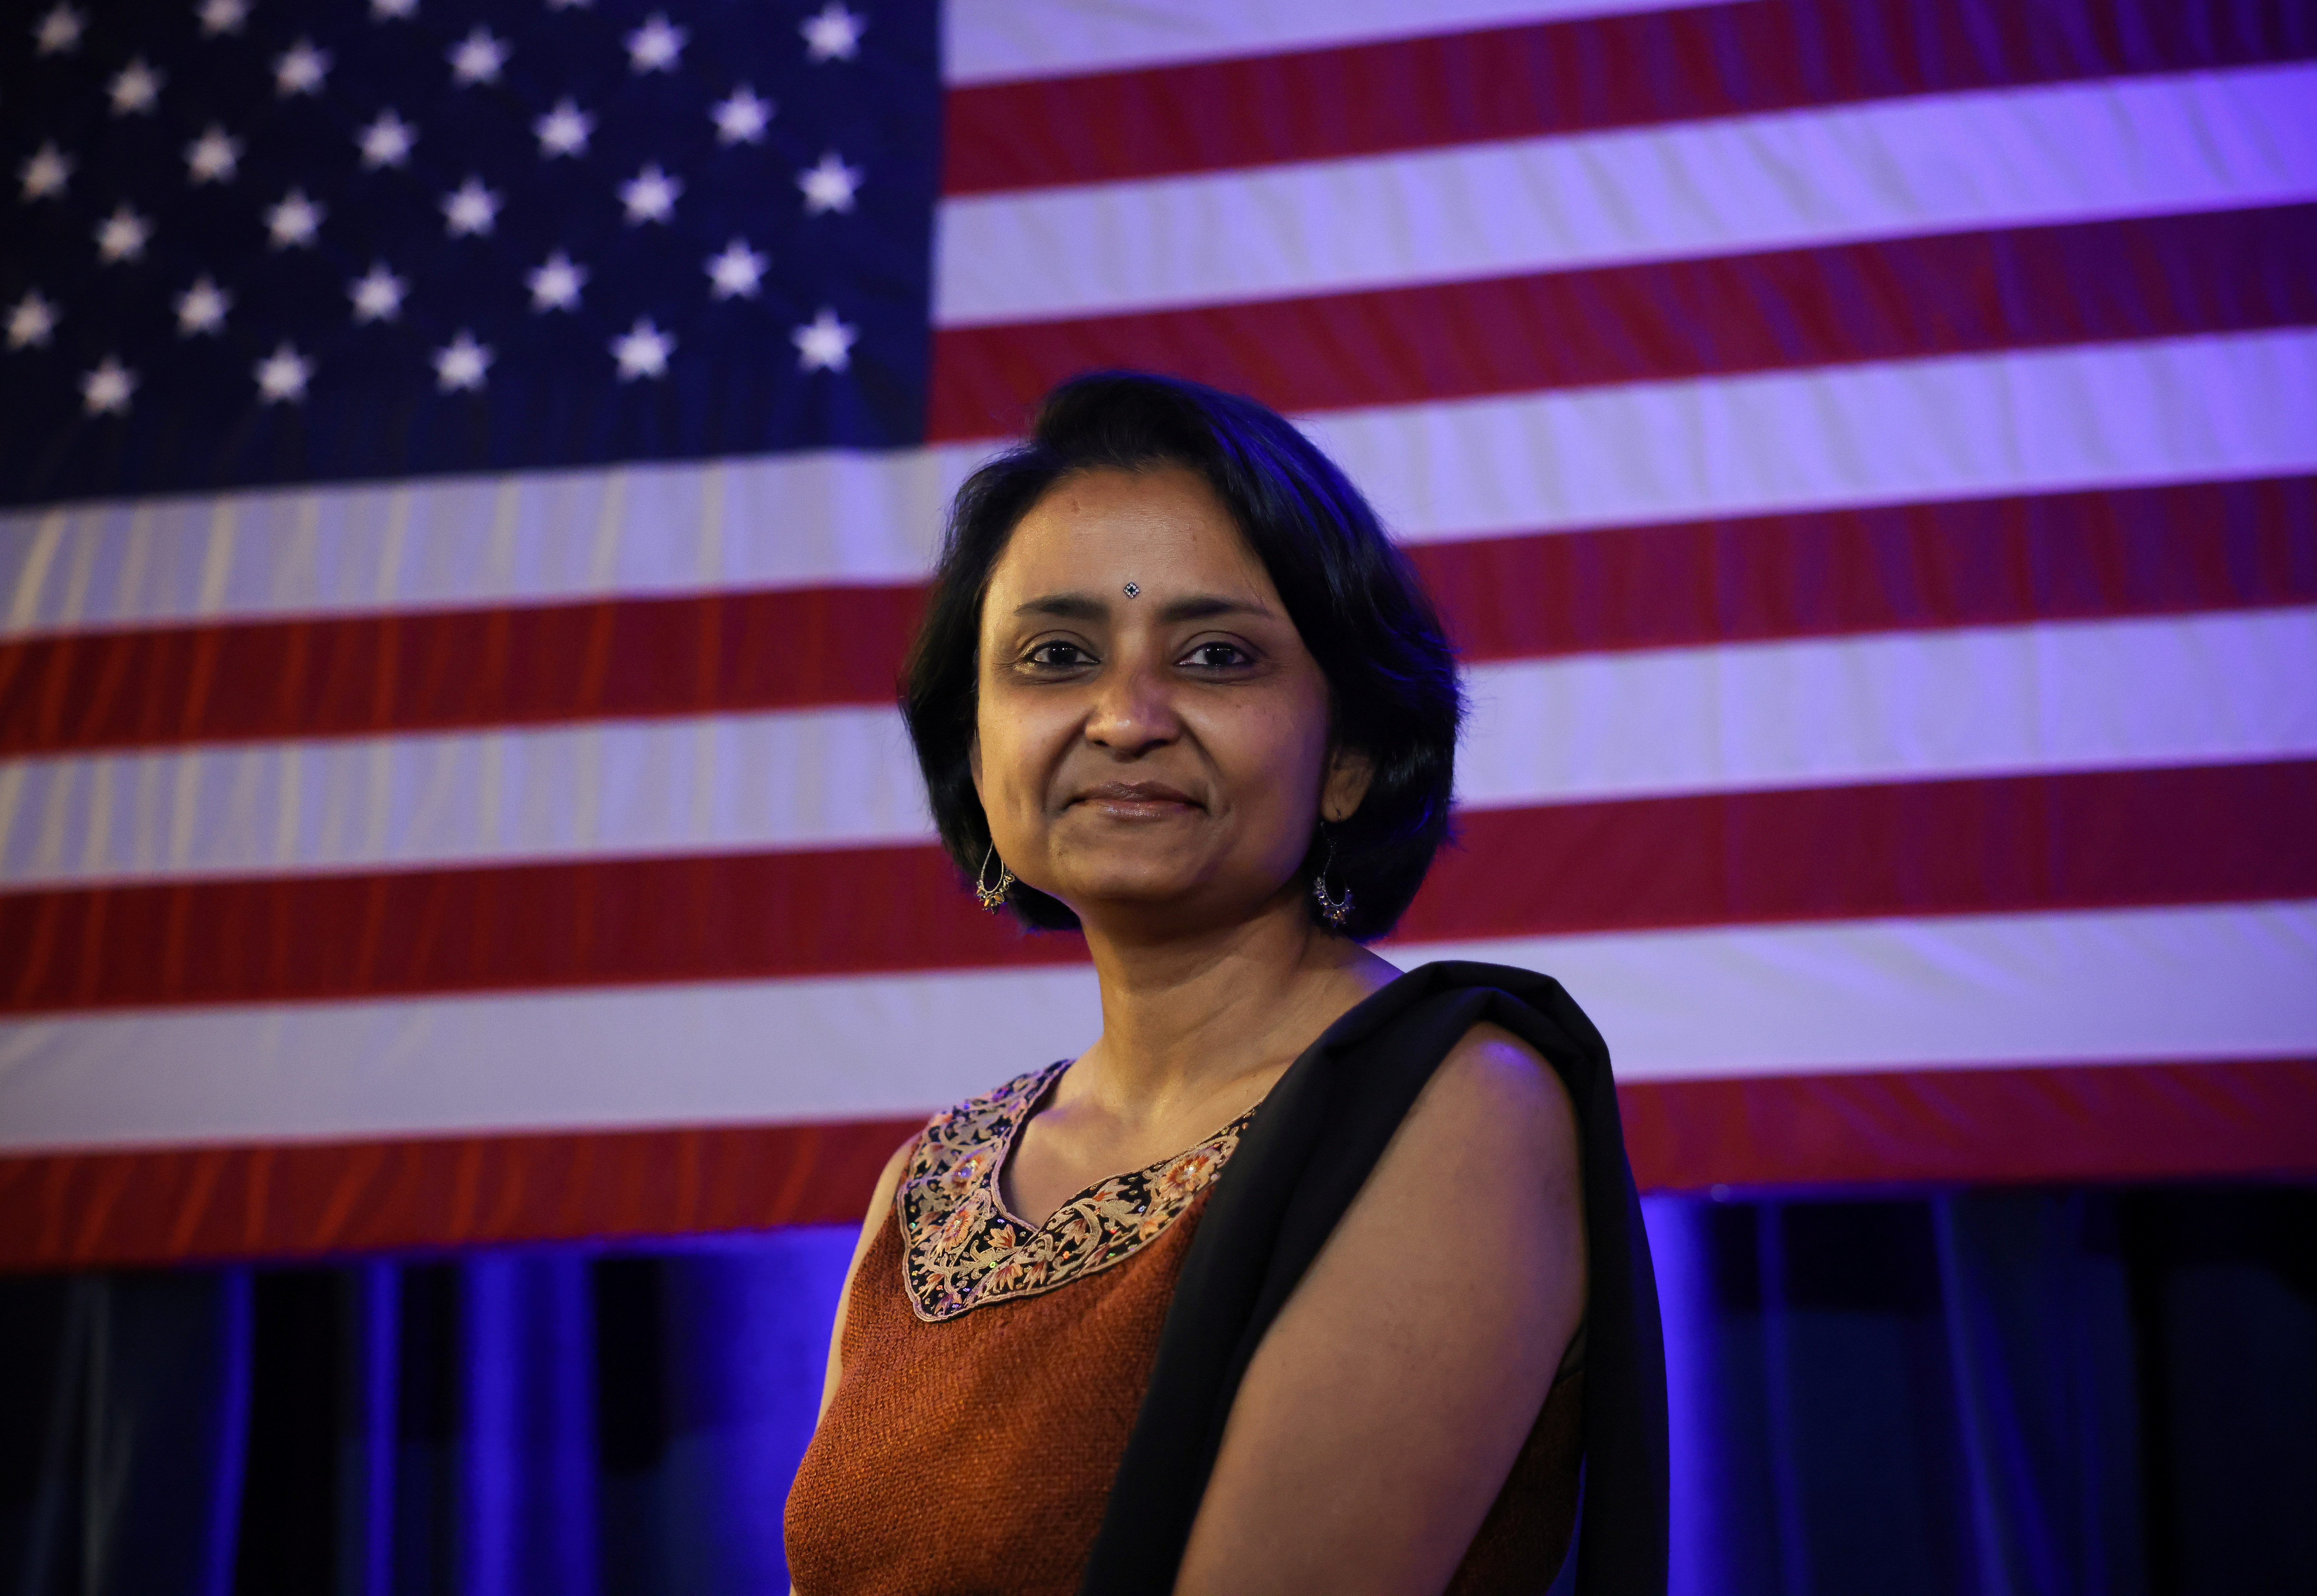 Suparna Dutta, the chairperson of Educators for Youngkin, is photographed following a campaign event for Virginia gubernatorial candidate Glenn Youngkin (R-VA), in McLean, Virginia, U.S., July 14, 2021. Picture taken July 14, 2021. REUTERS/Evelyn Hockstein